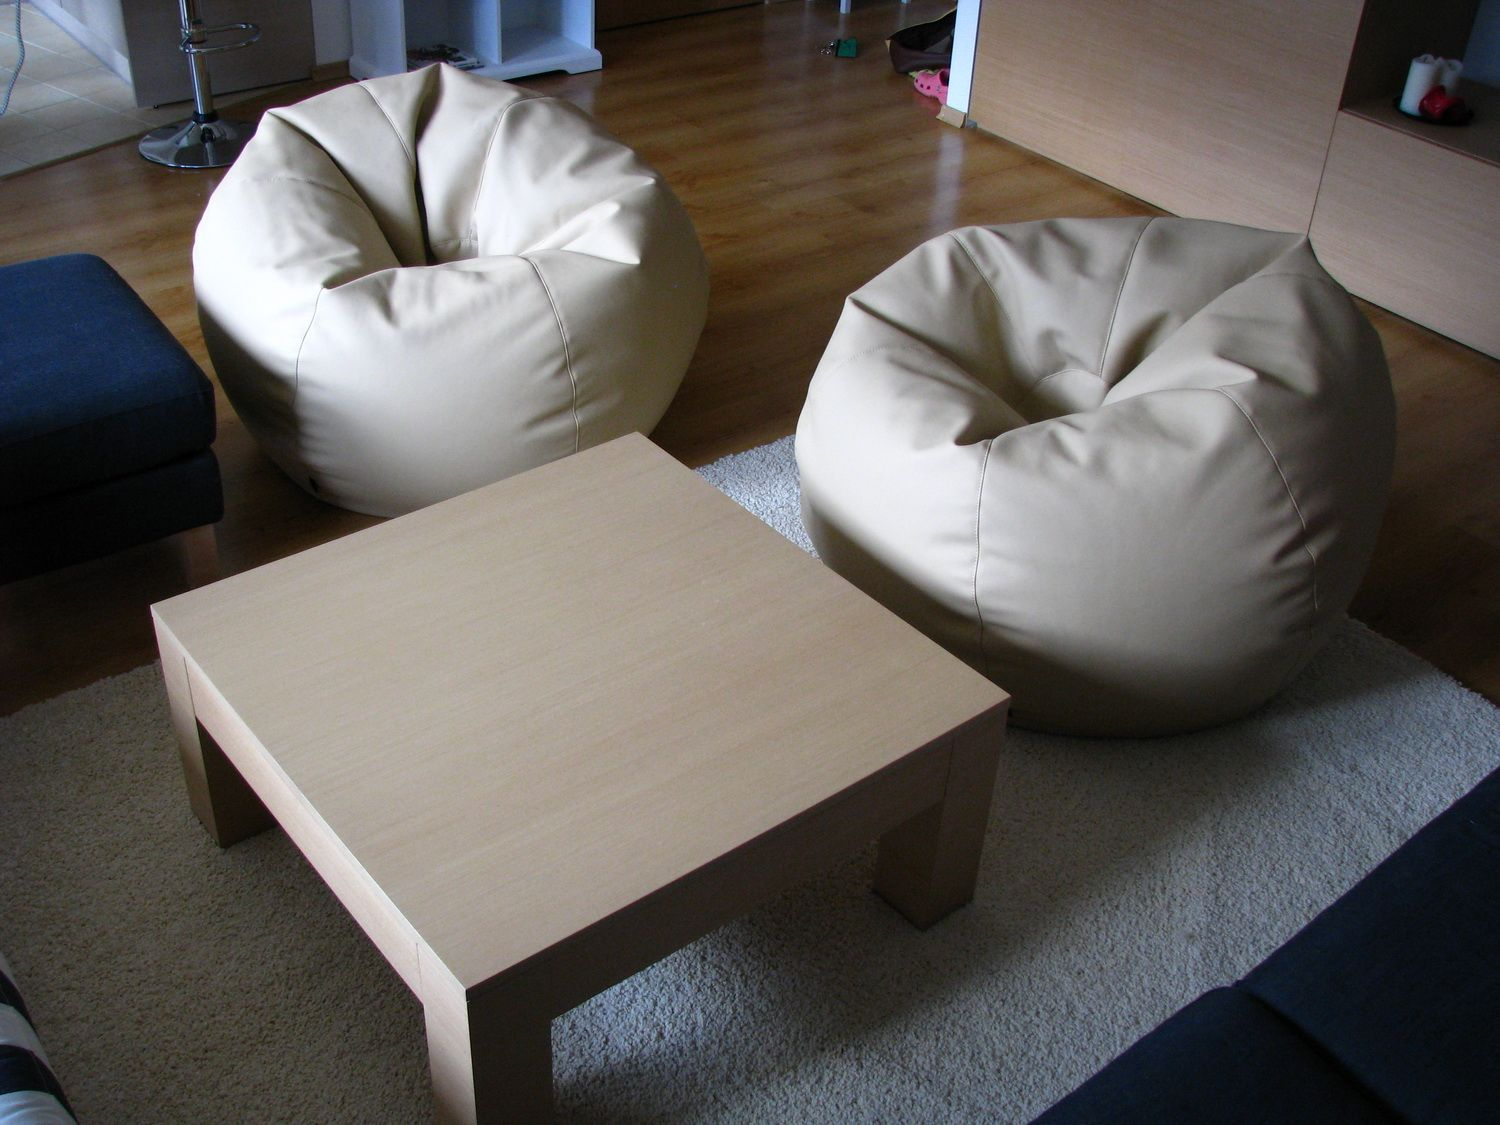 Outstanding Round Beanbag Chair By Lennycraft Large Size Handmade Camellatalisay Diy Chair Ideas Camellatalisaycom